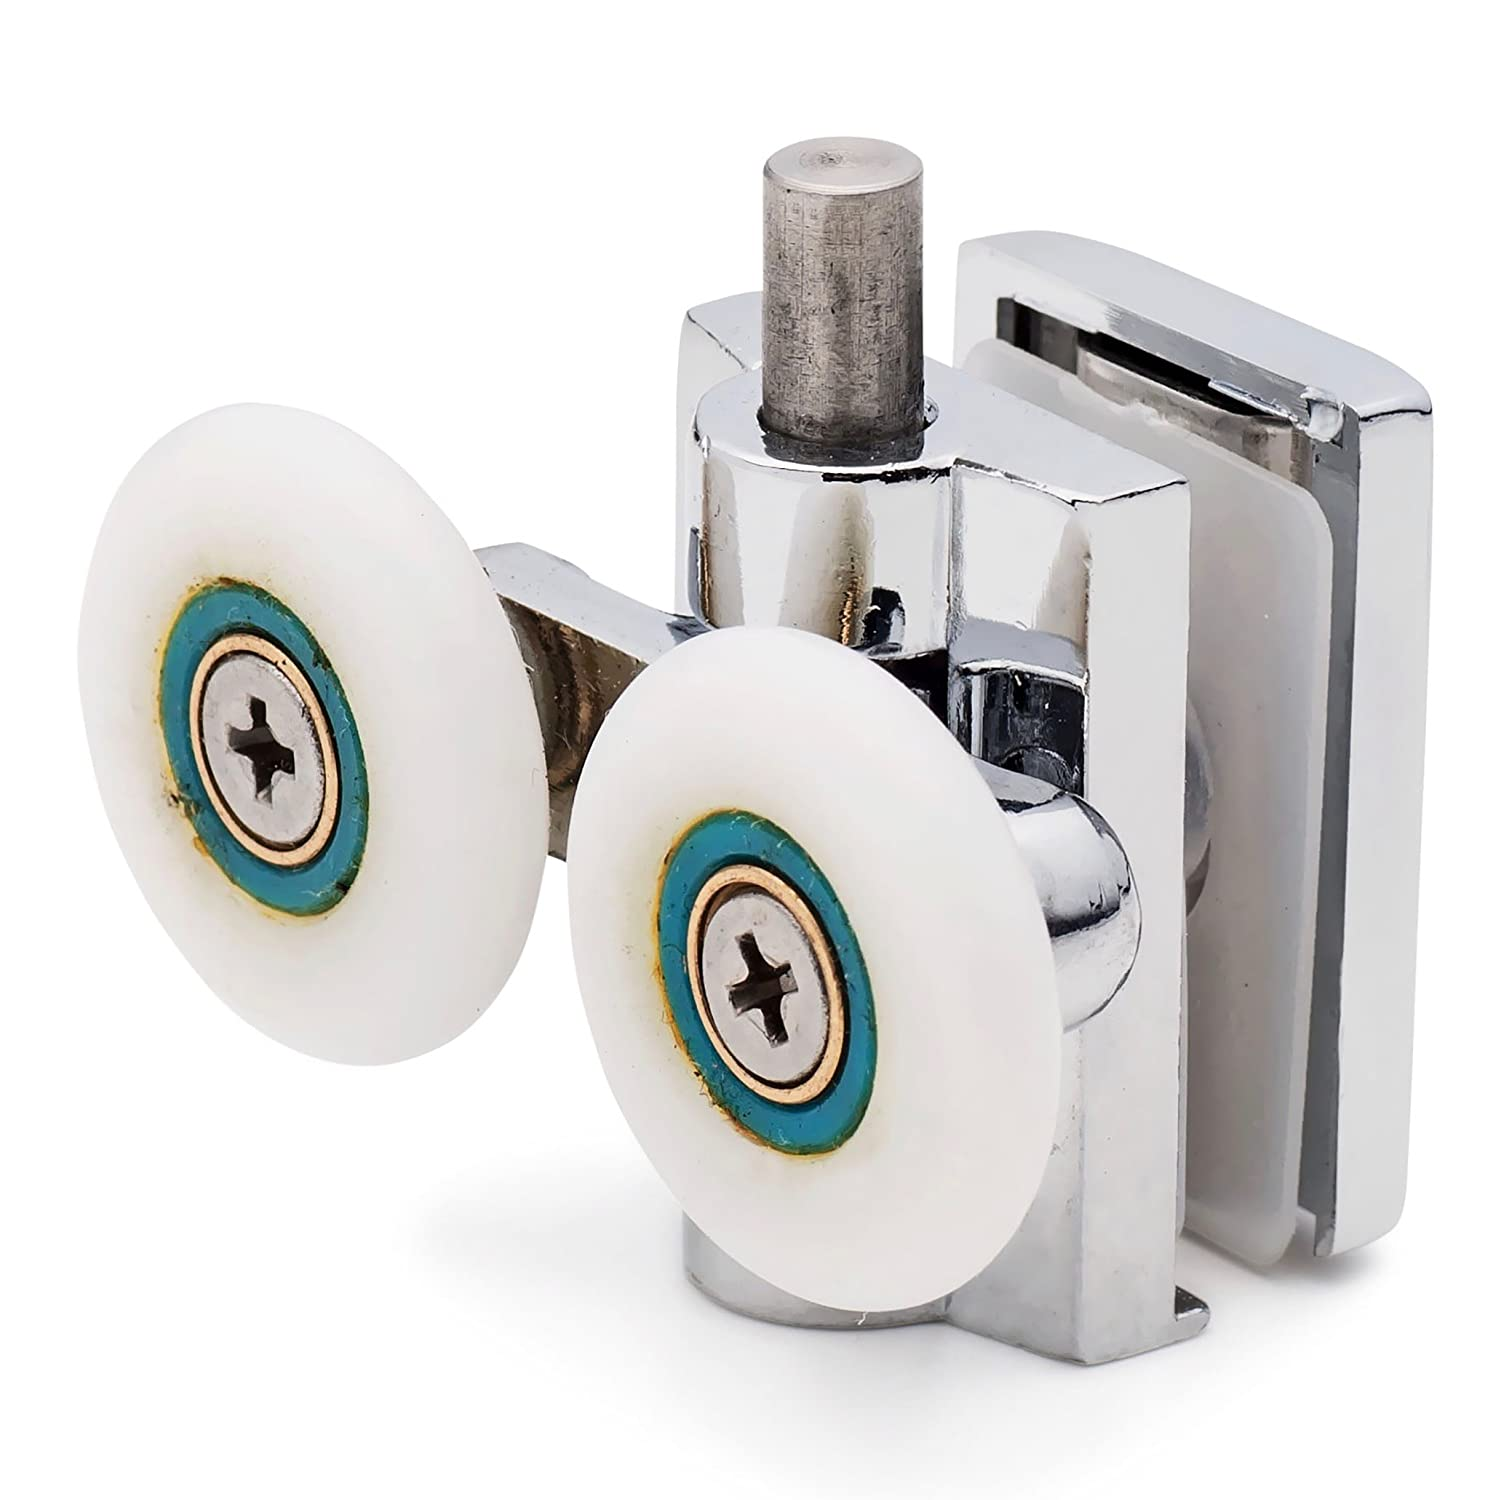 2 x Double Bottom Zinc Alloy Shower Door ROLLERS/Runners/Wheels 26mm wheel diameter K051